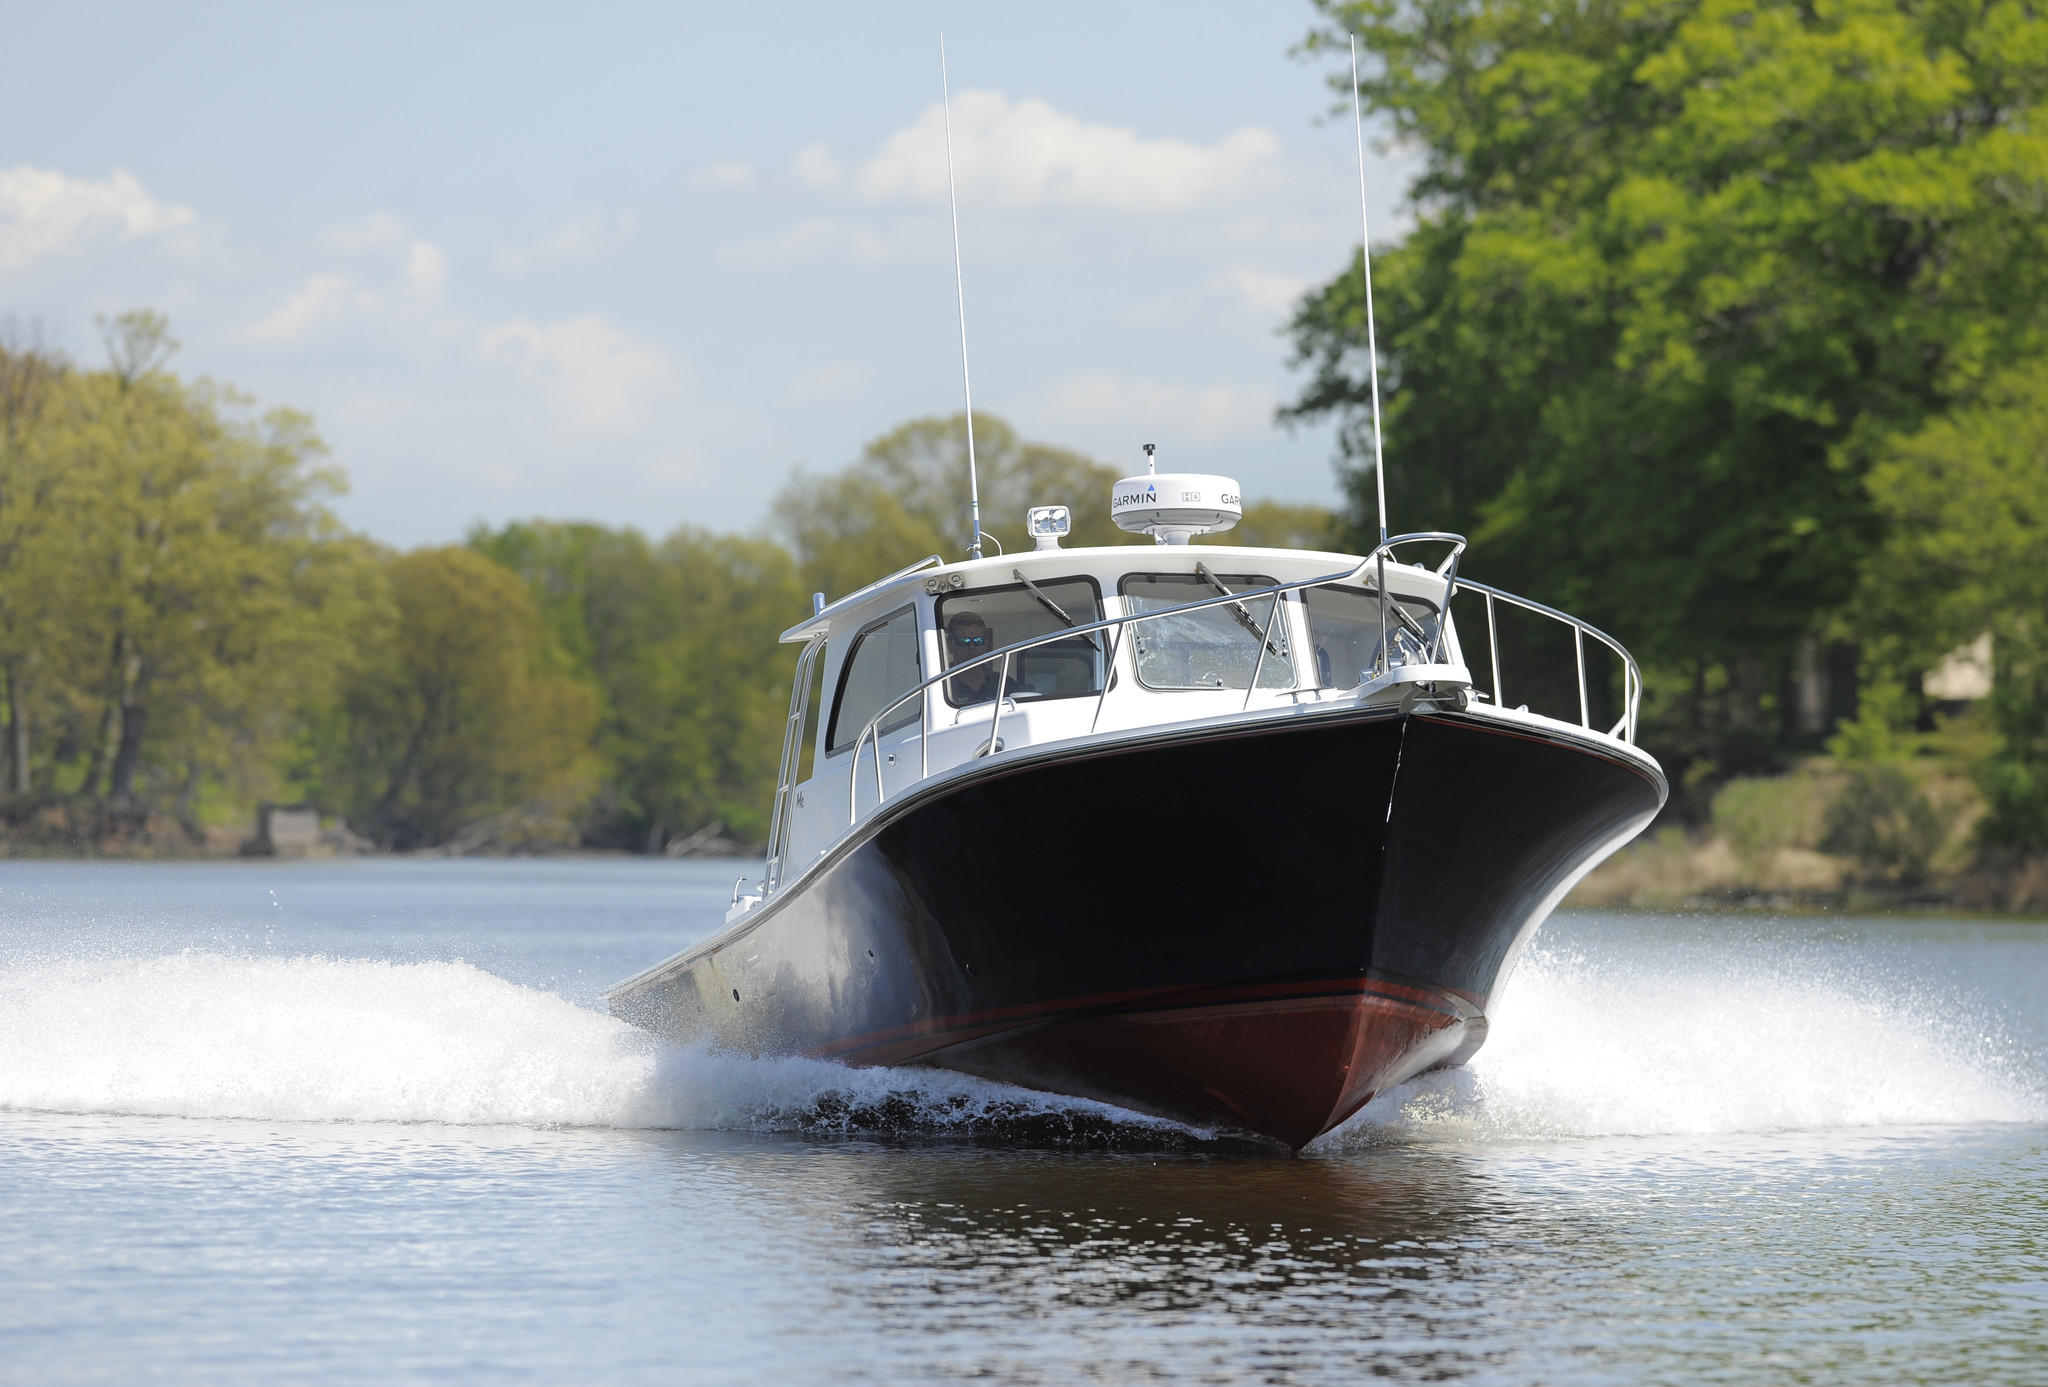 A custom built boat being driven in the Chesapeake Bay by Bill Judge, the owner of Judge Yachts in Denton.